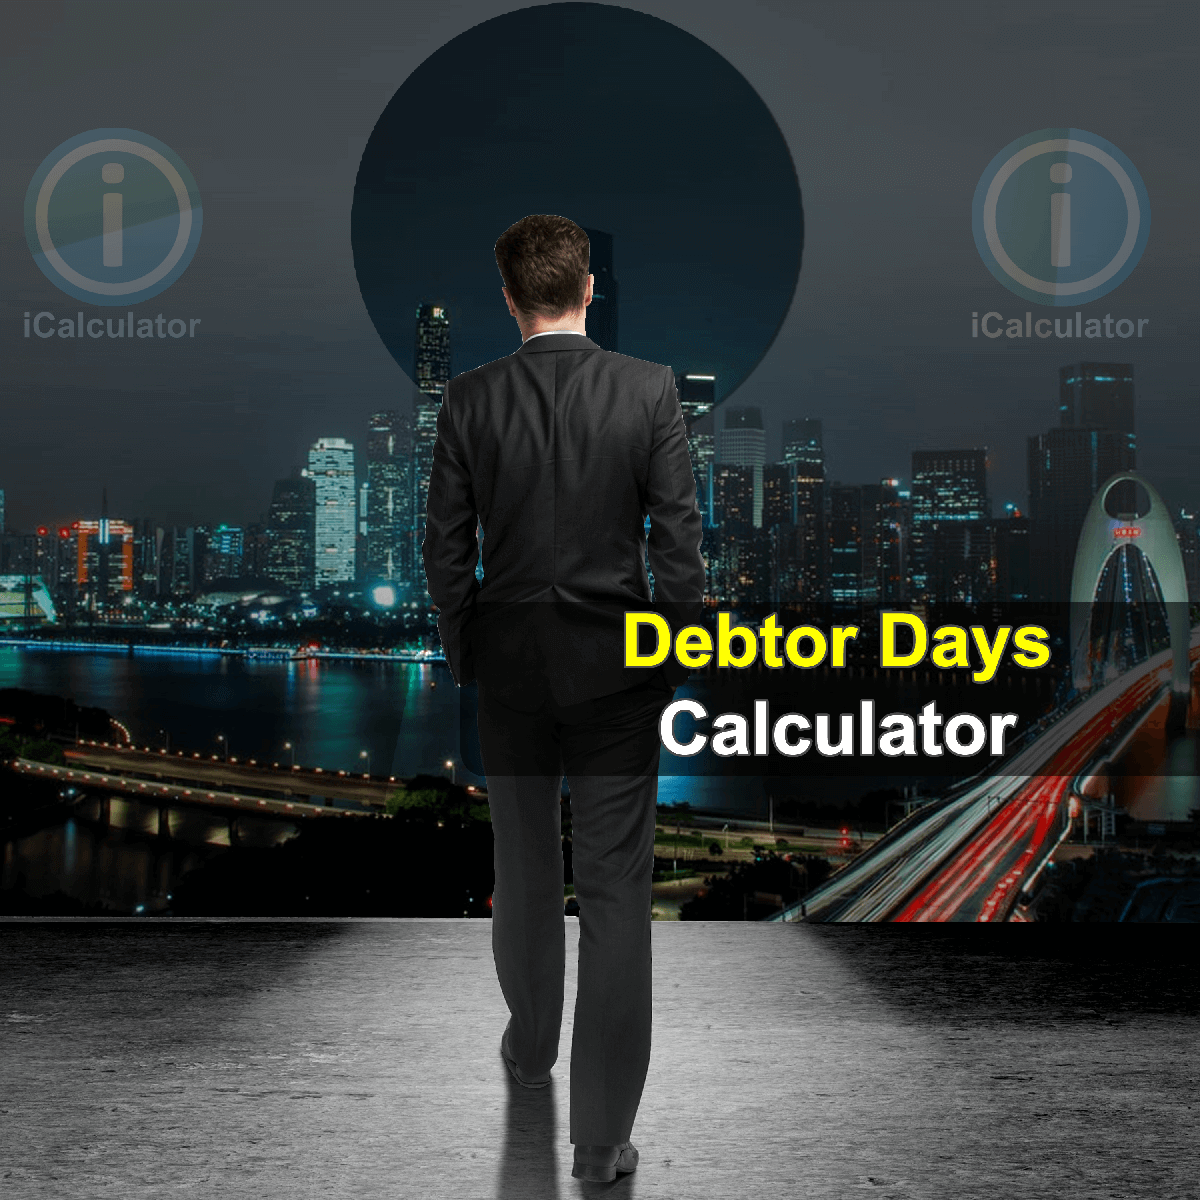 Debtor Days Calculator. This image provides details of how to calculate the debtor days using and maintaining a car using a calculator and notepad. By using the debt formula, the Debtor Days Calculator provides a true calculation of the average number of days it takes to collect payments after sales have been made by a company.